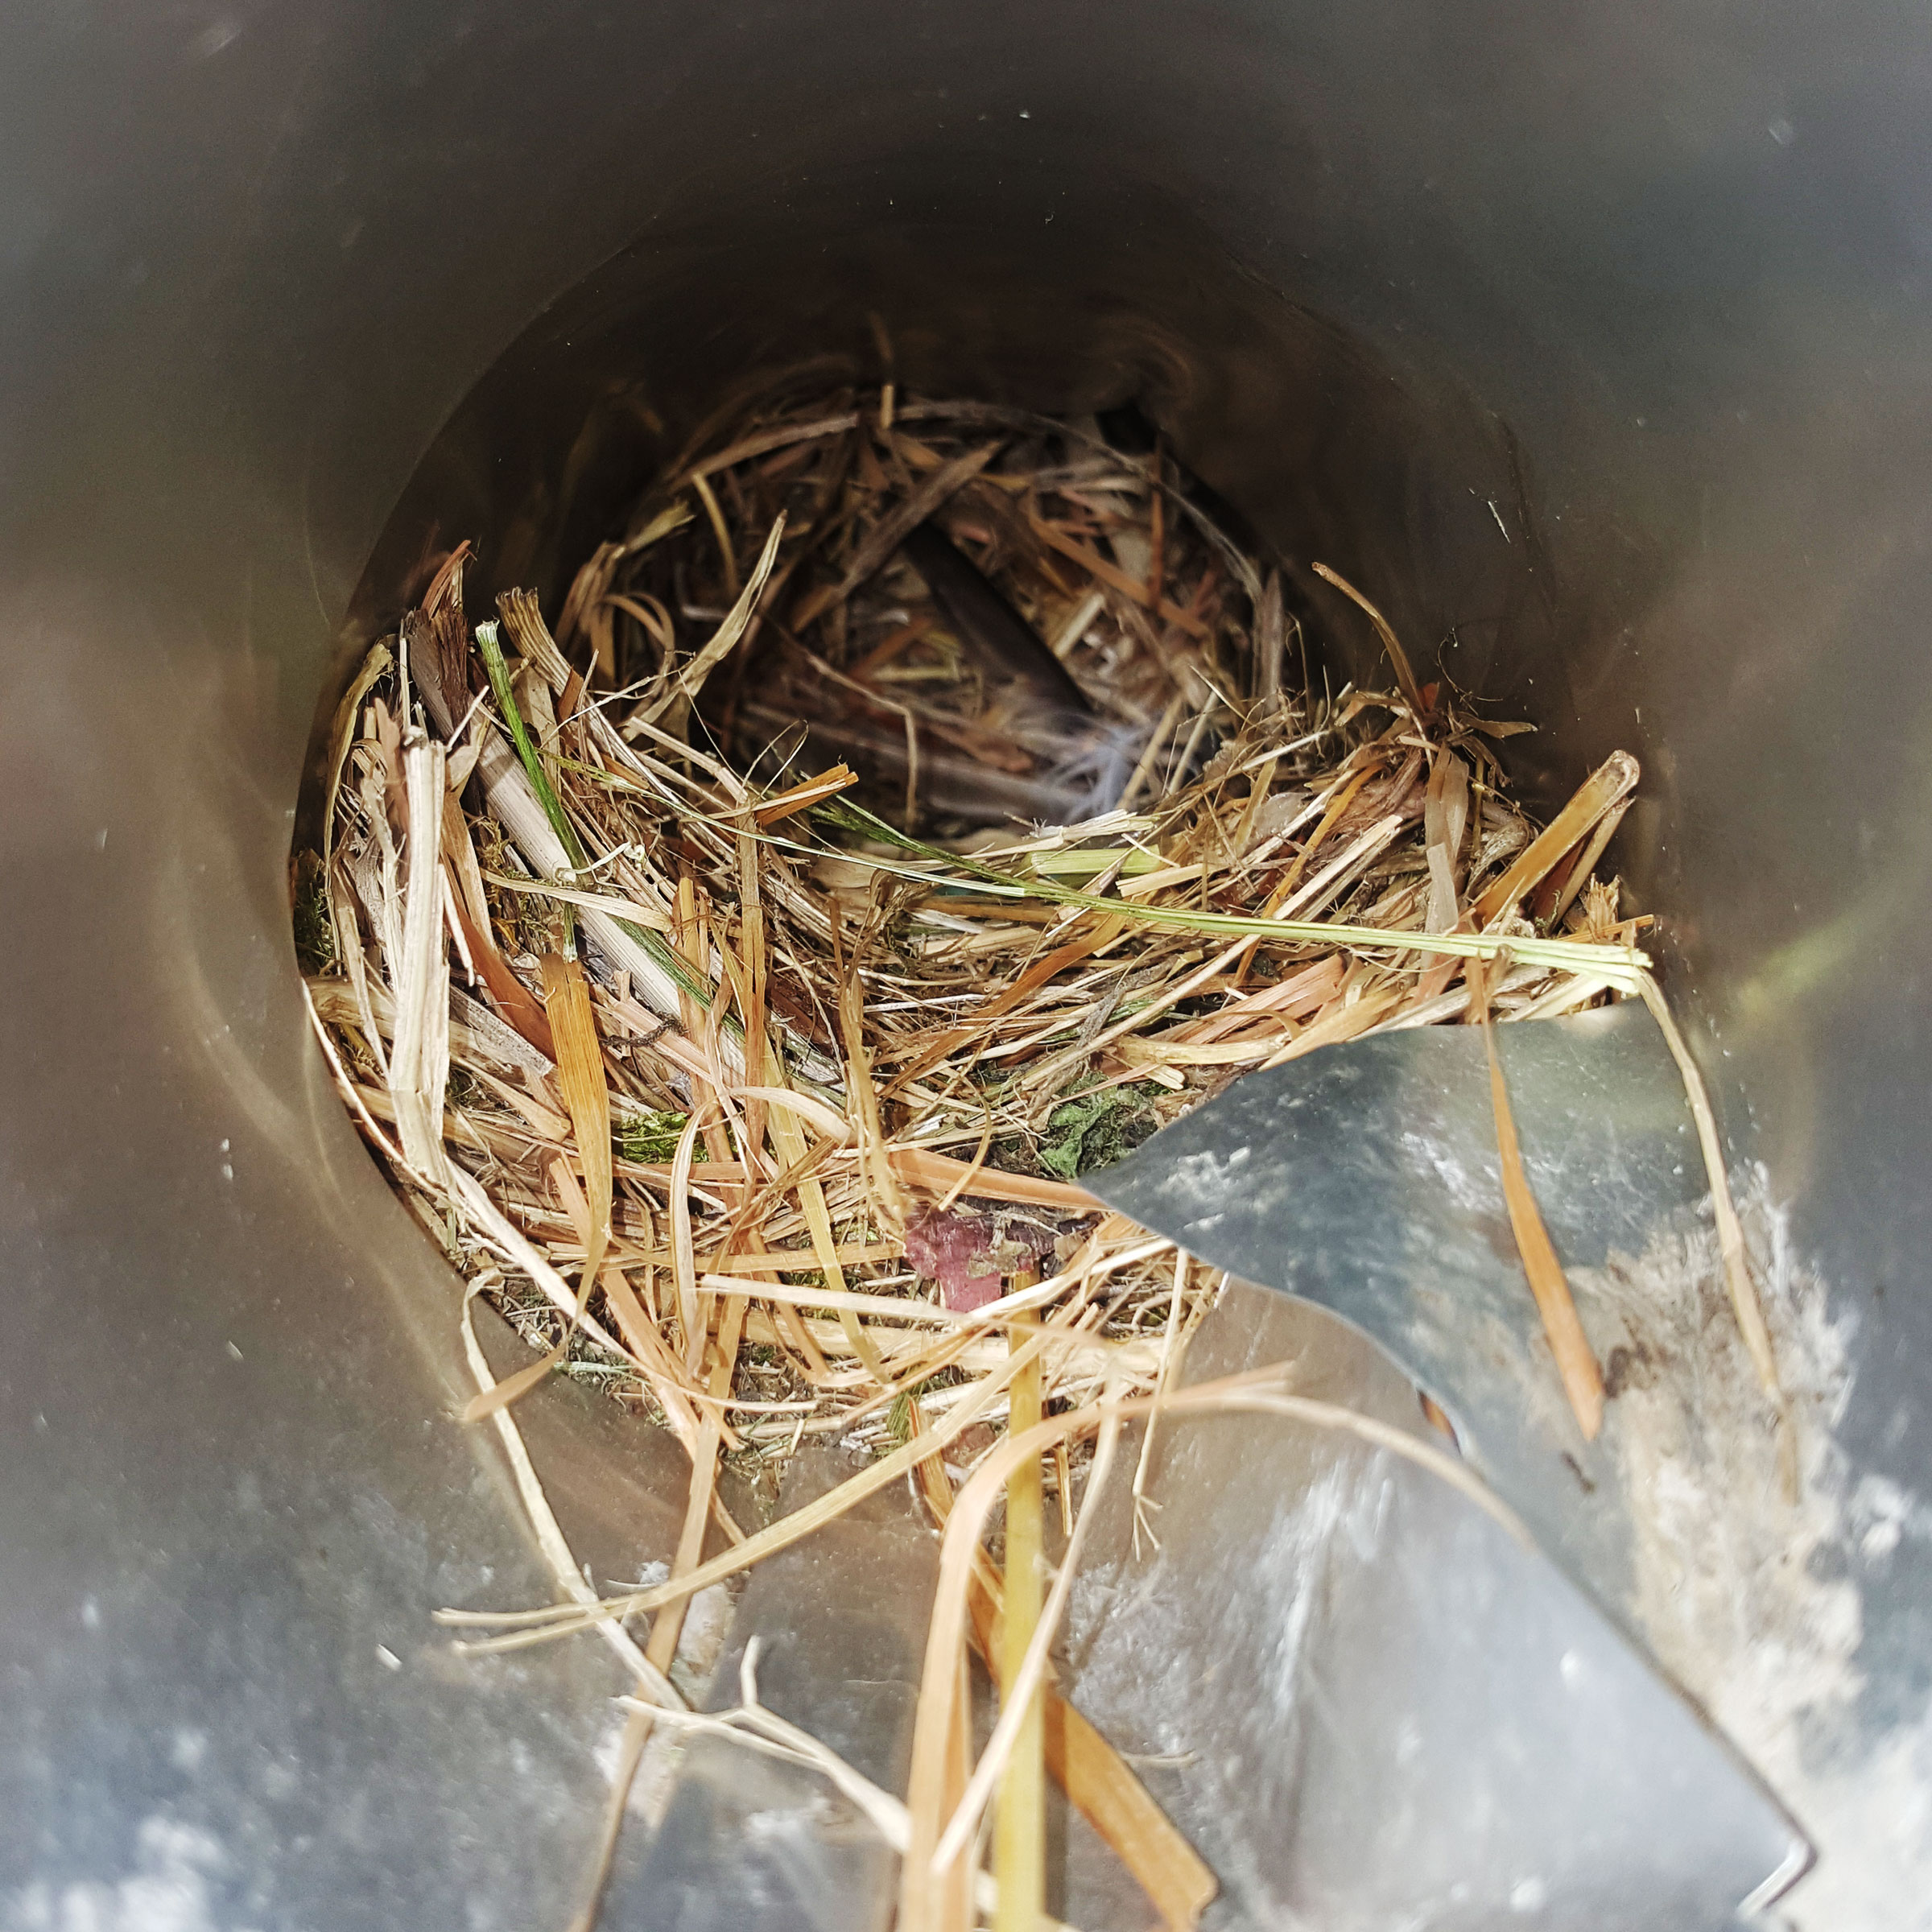 Dryer vent blocked due to a bird nest.